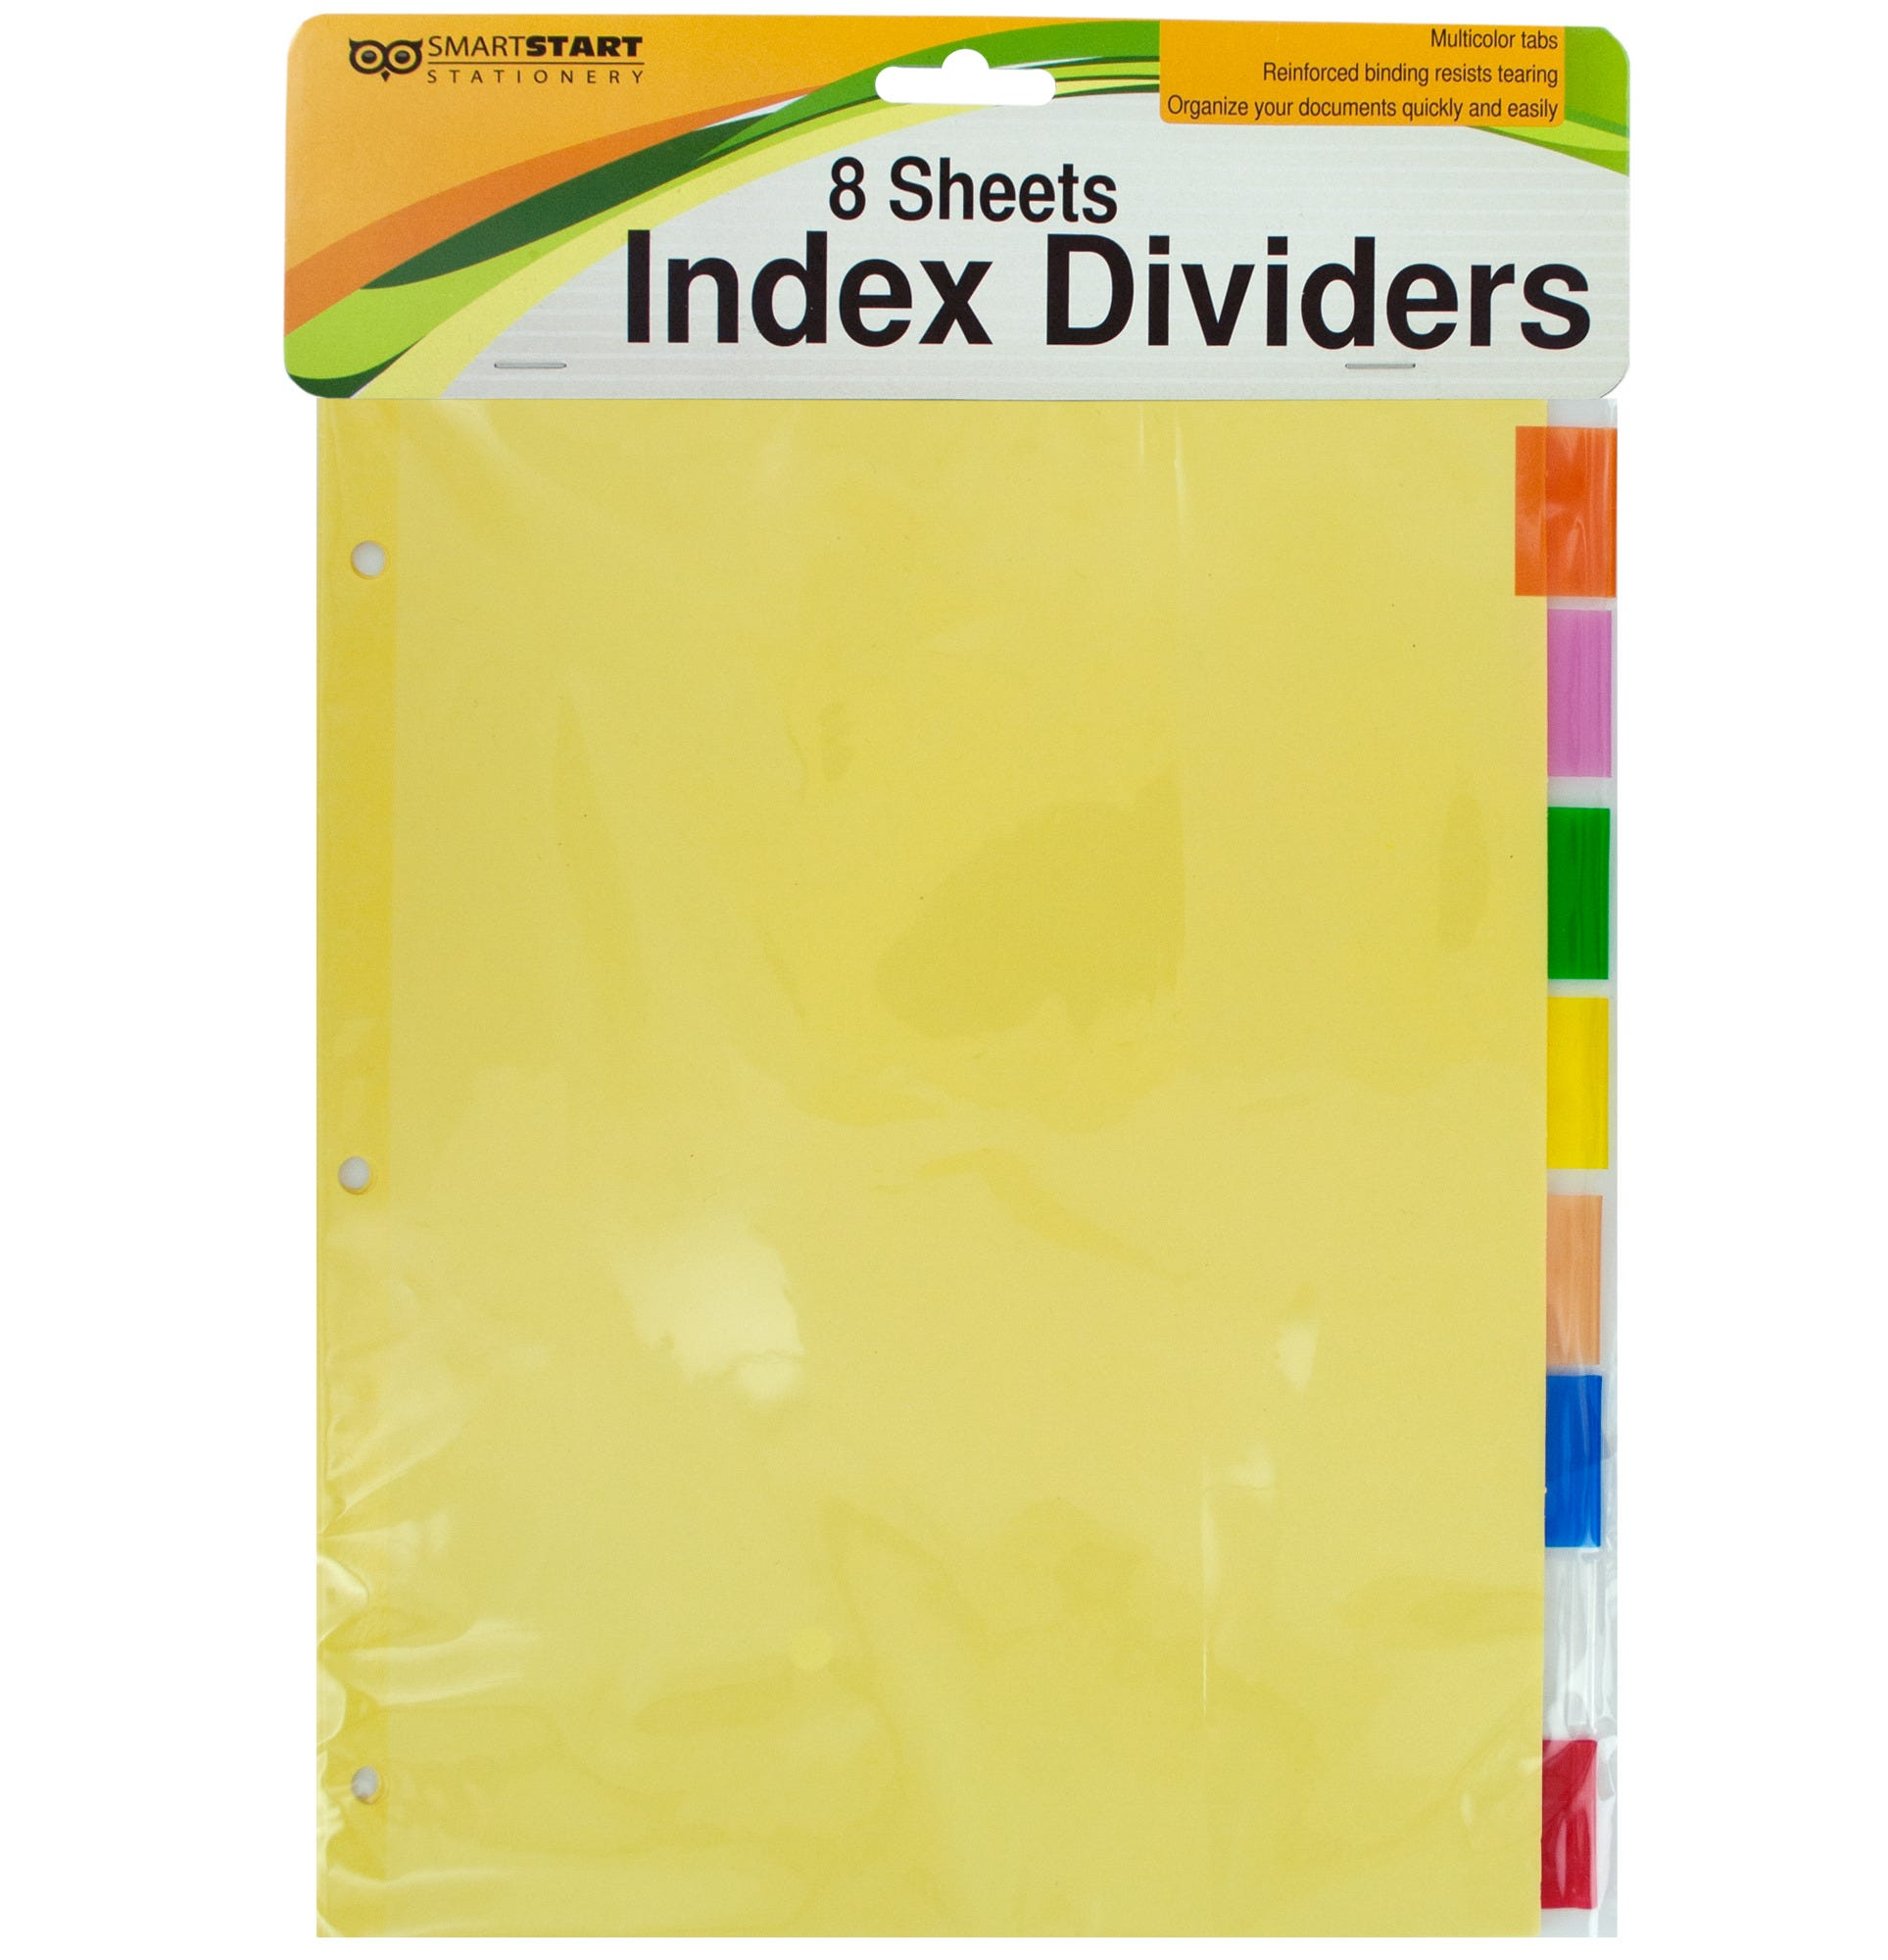 Index Dividers with Multicolor Tabs- Qty 24